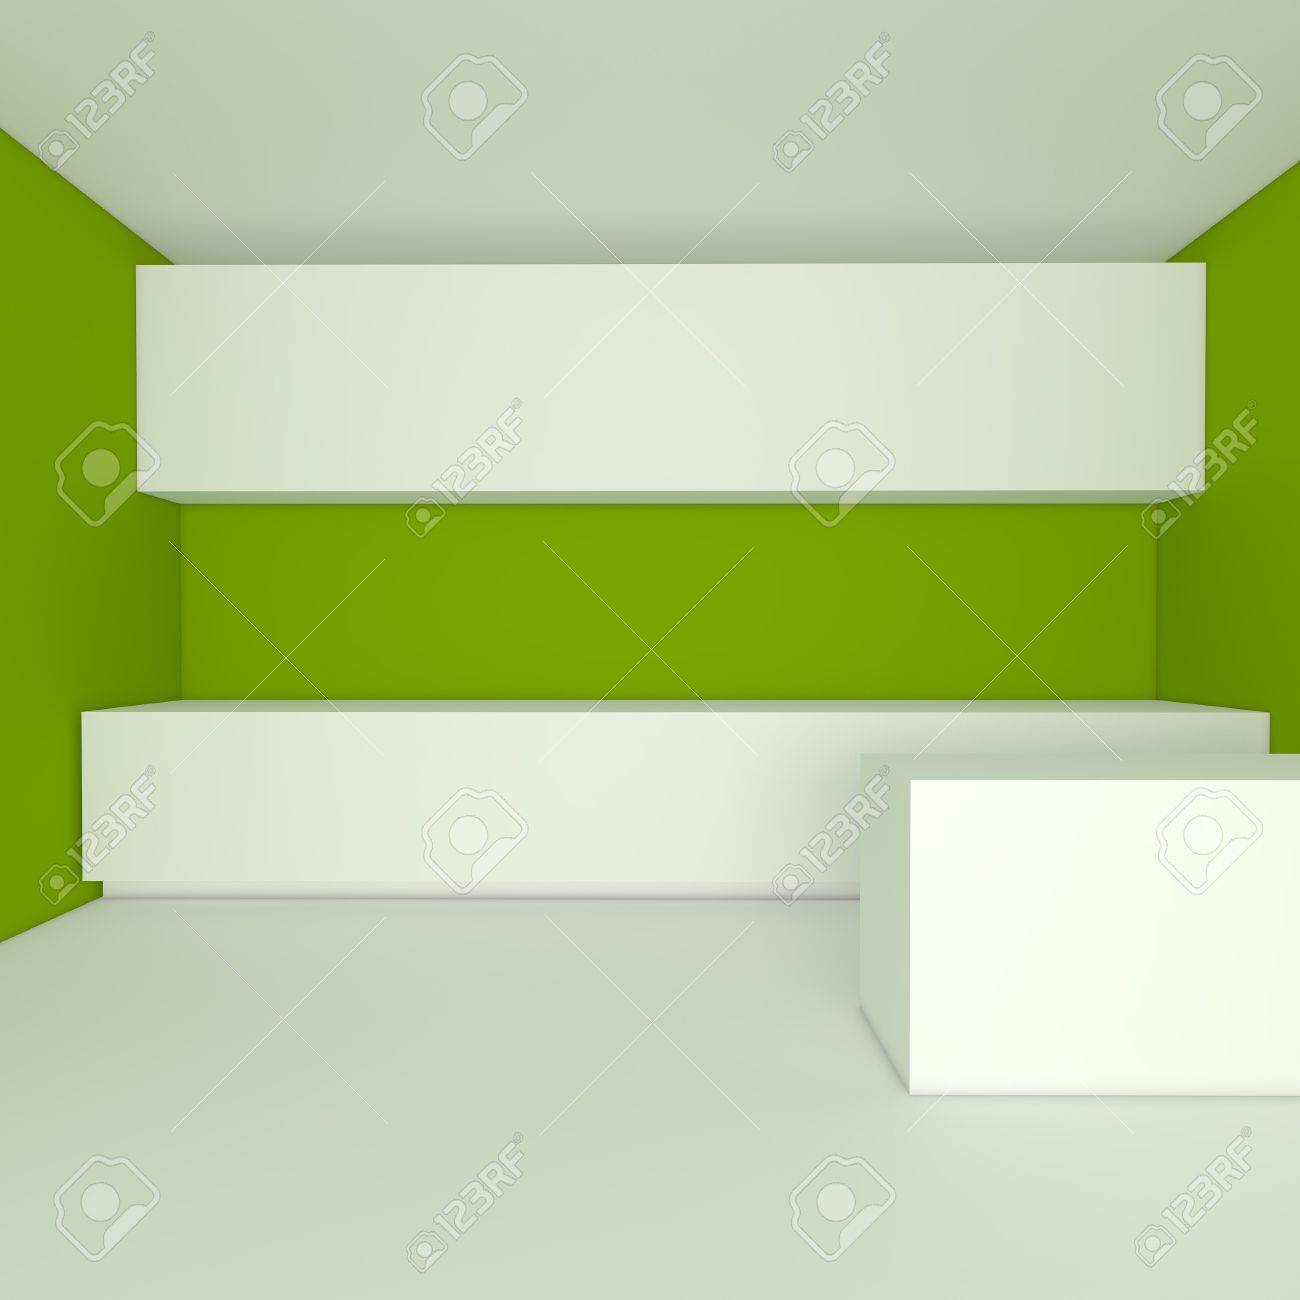 empty interior design for kitchen room with green wall Stock Photo - 13762672